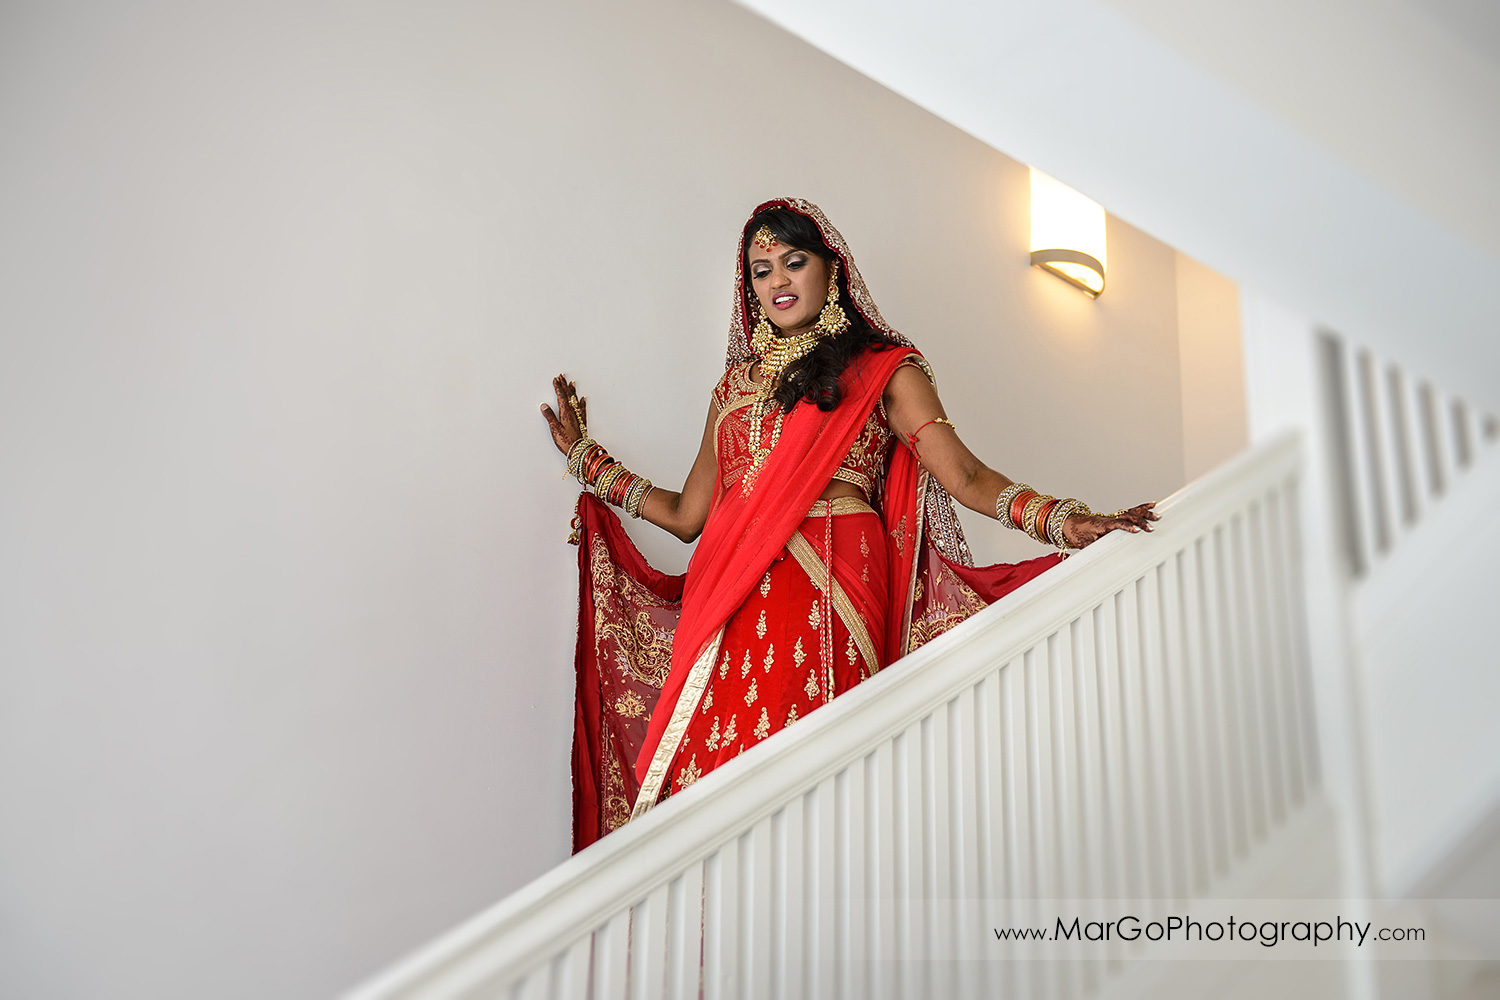 indian bride wlaking down the stairs at Hotel Shattuck Plaza in Berkeley